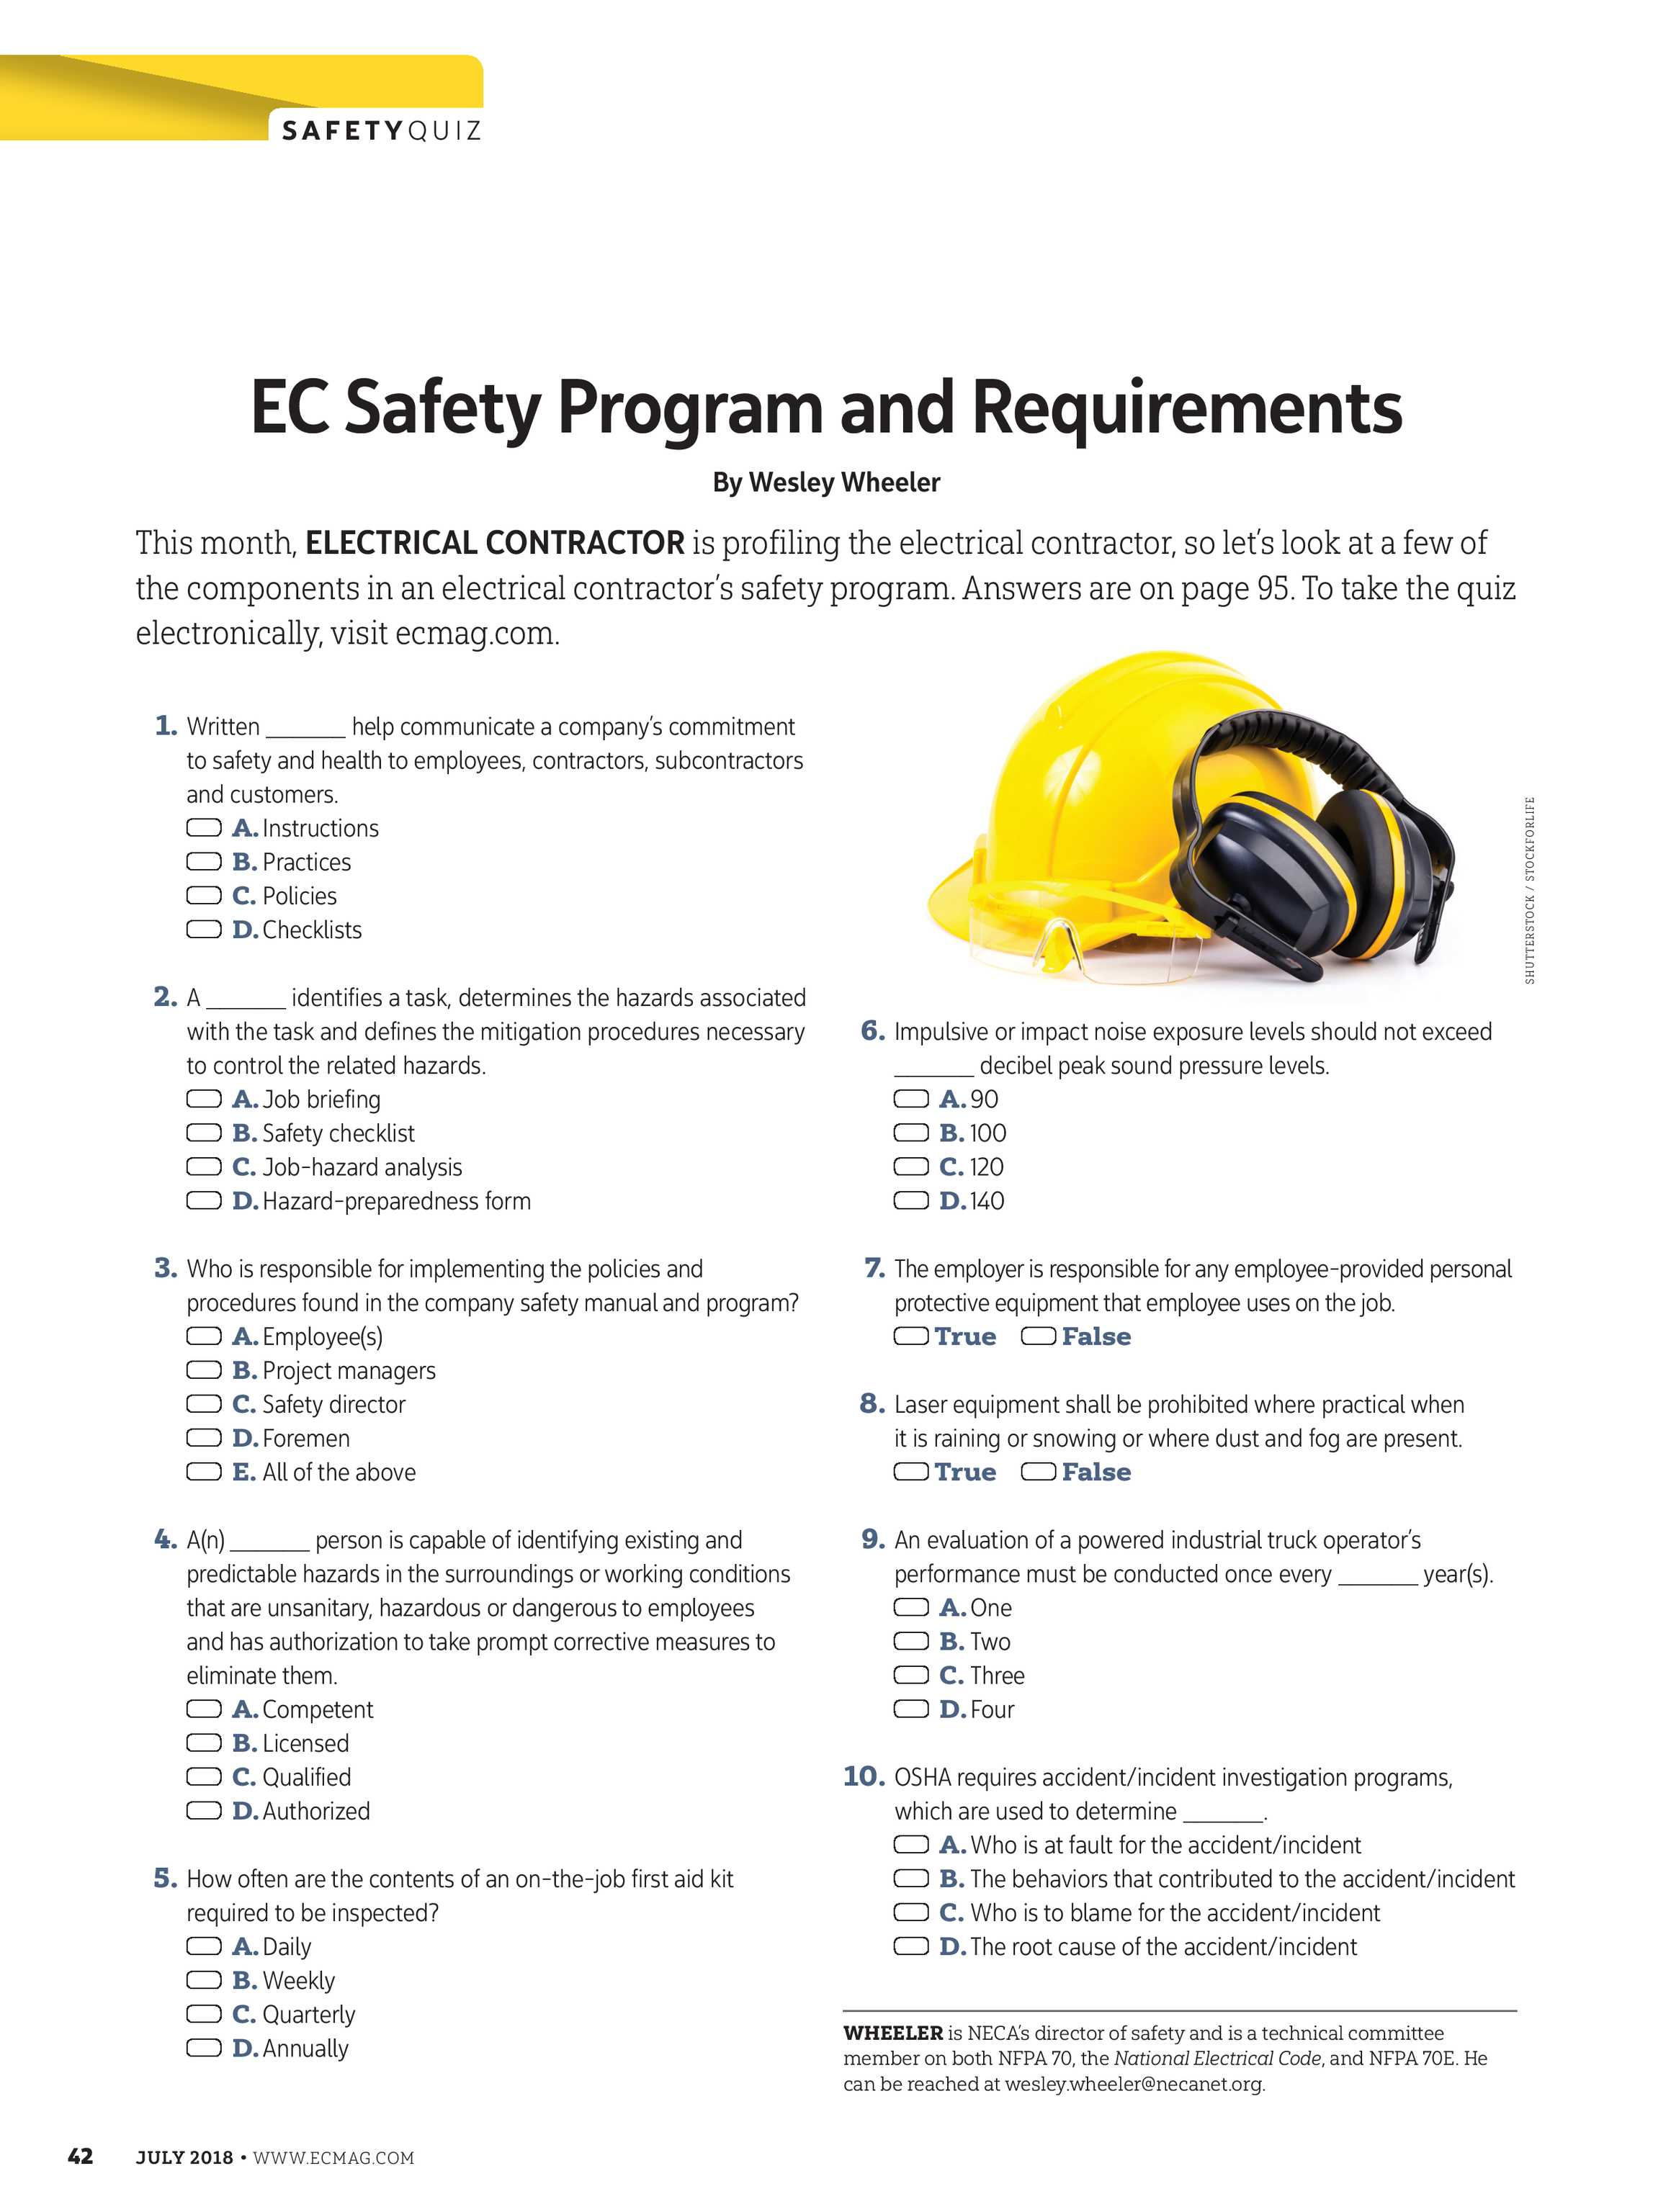 Electrical Contractor July 2018 Page 42